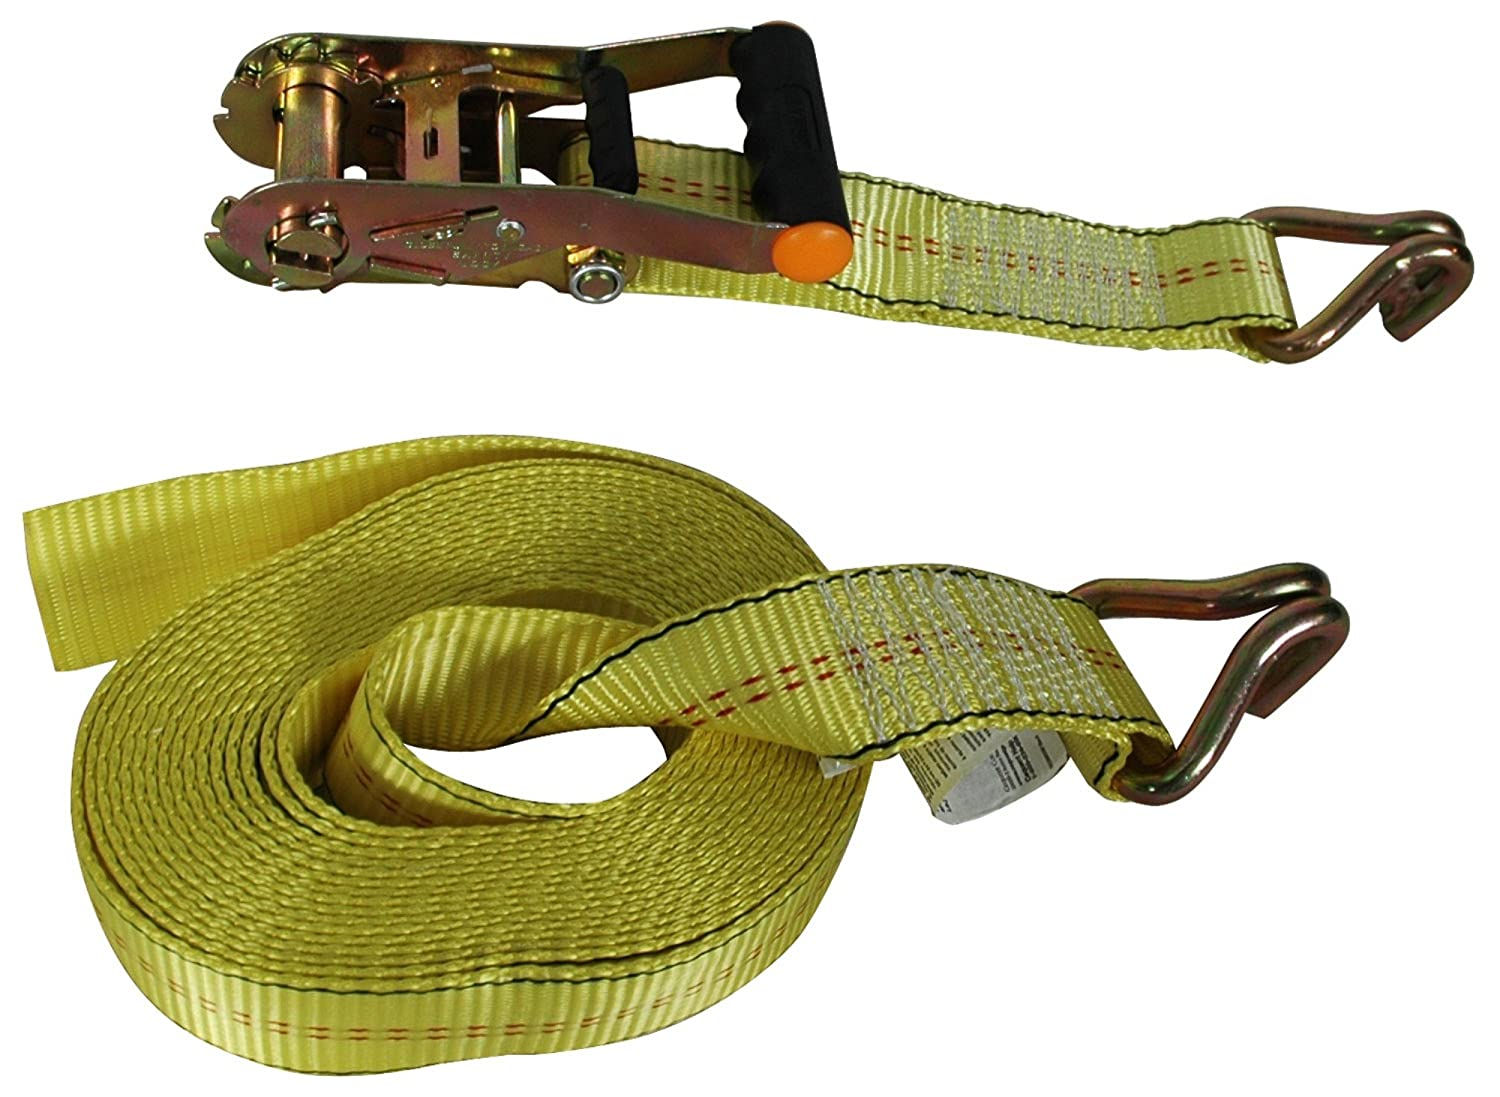 Highland 1 piece 1152500 25 Yellow Super Duty Ratchet Tie Down with Double J-Hooks